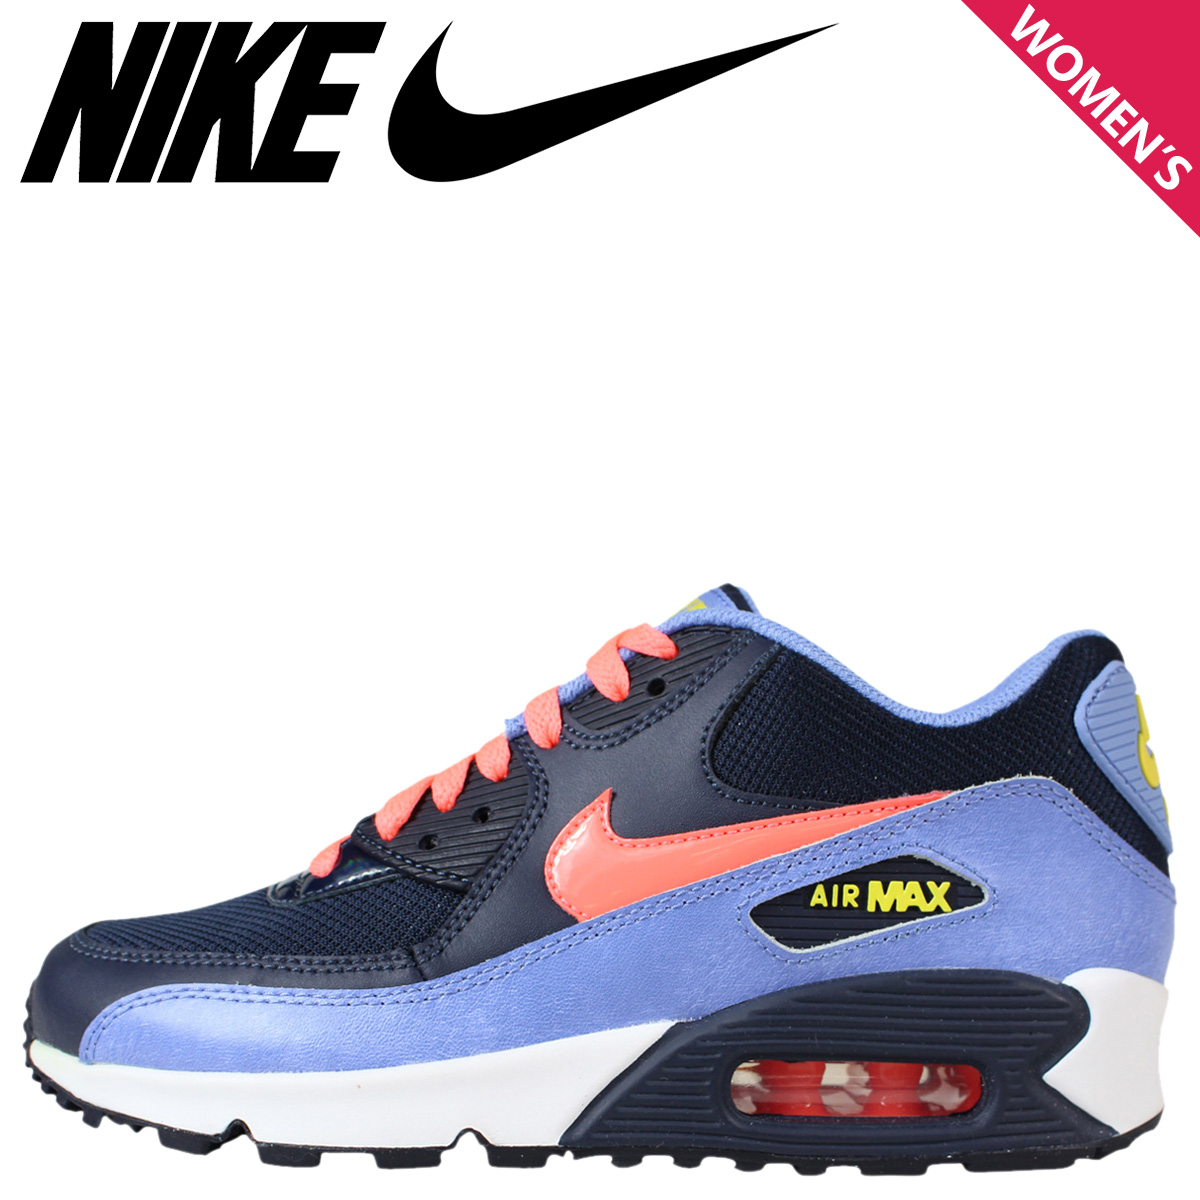 6dfead271e0 The origin of the name comes from the Greece myths of one Jeff Johnson saw  in the dream, victory goddess Nike (Nike).